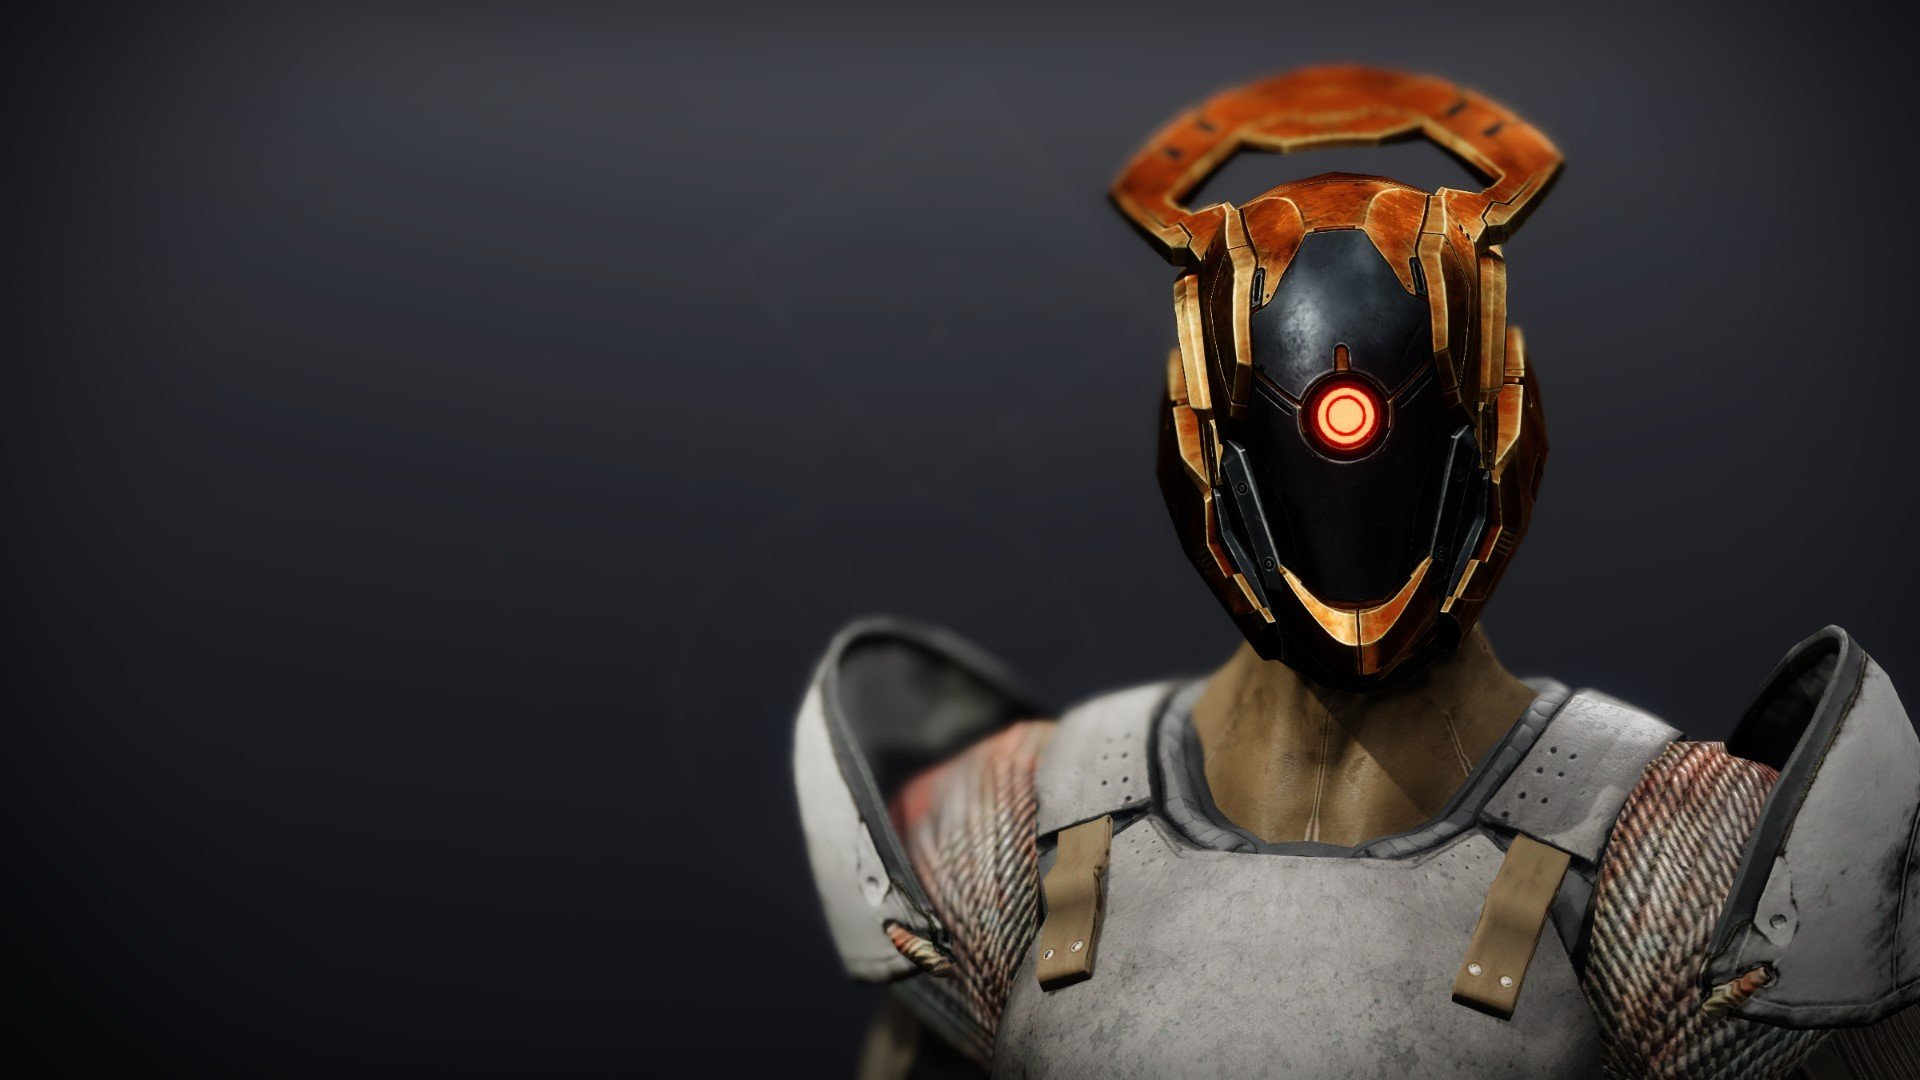 An in-game render of the Battlecage of Kabr.